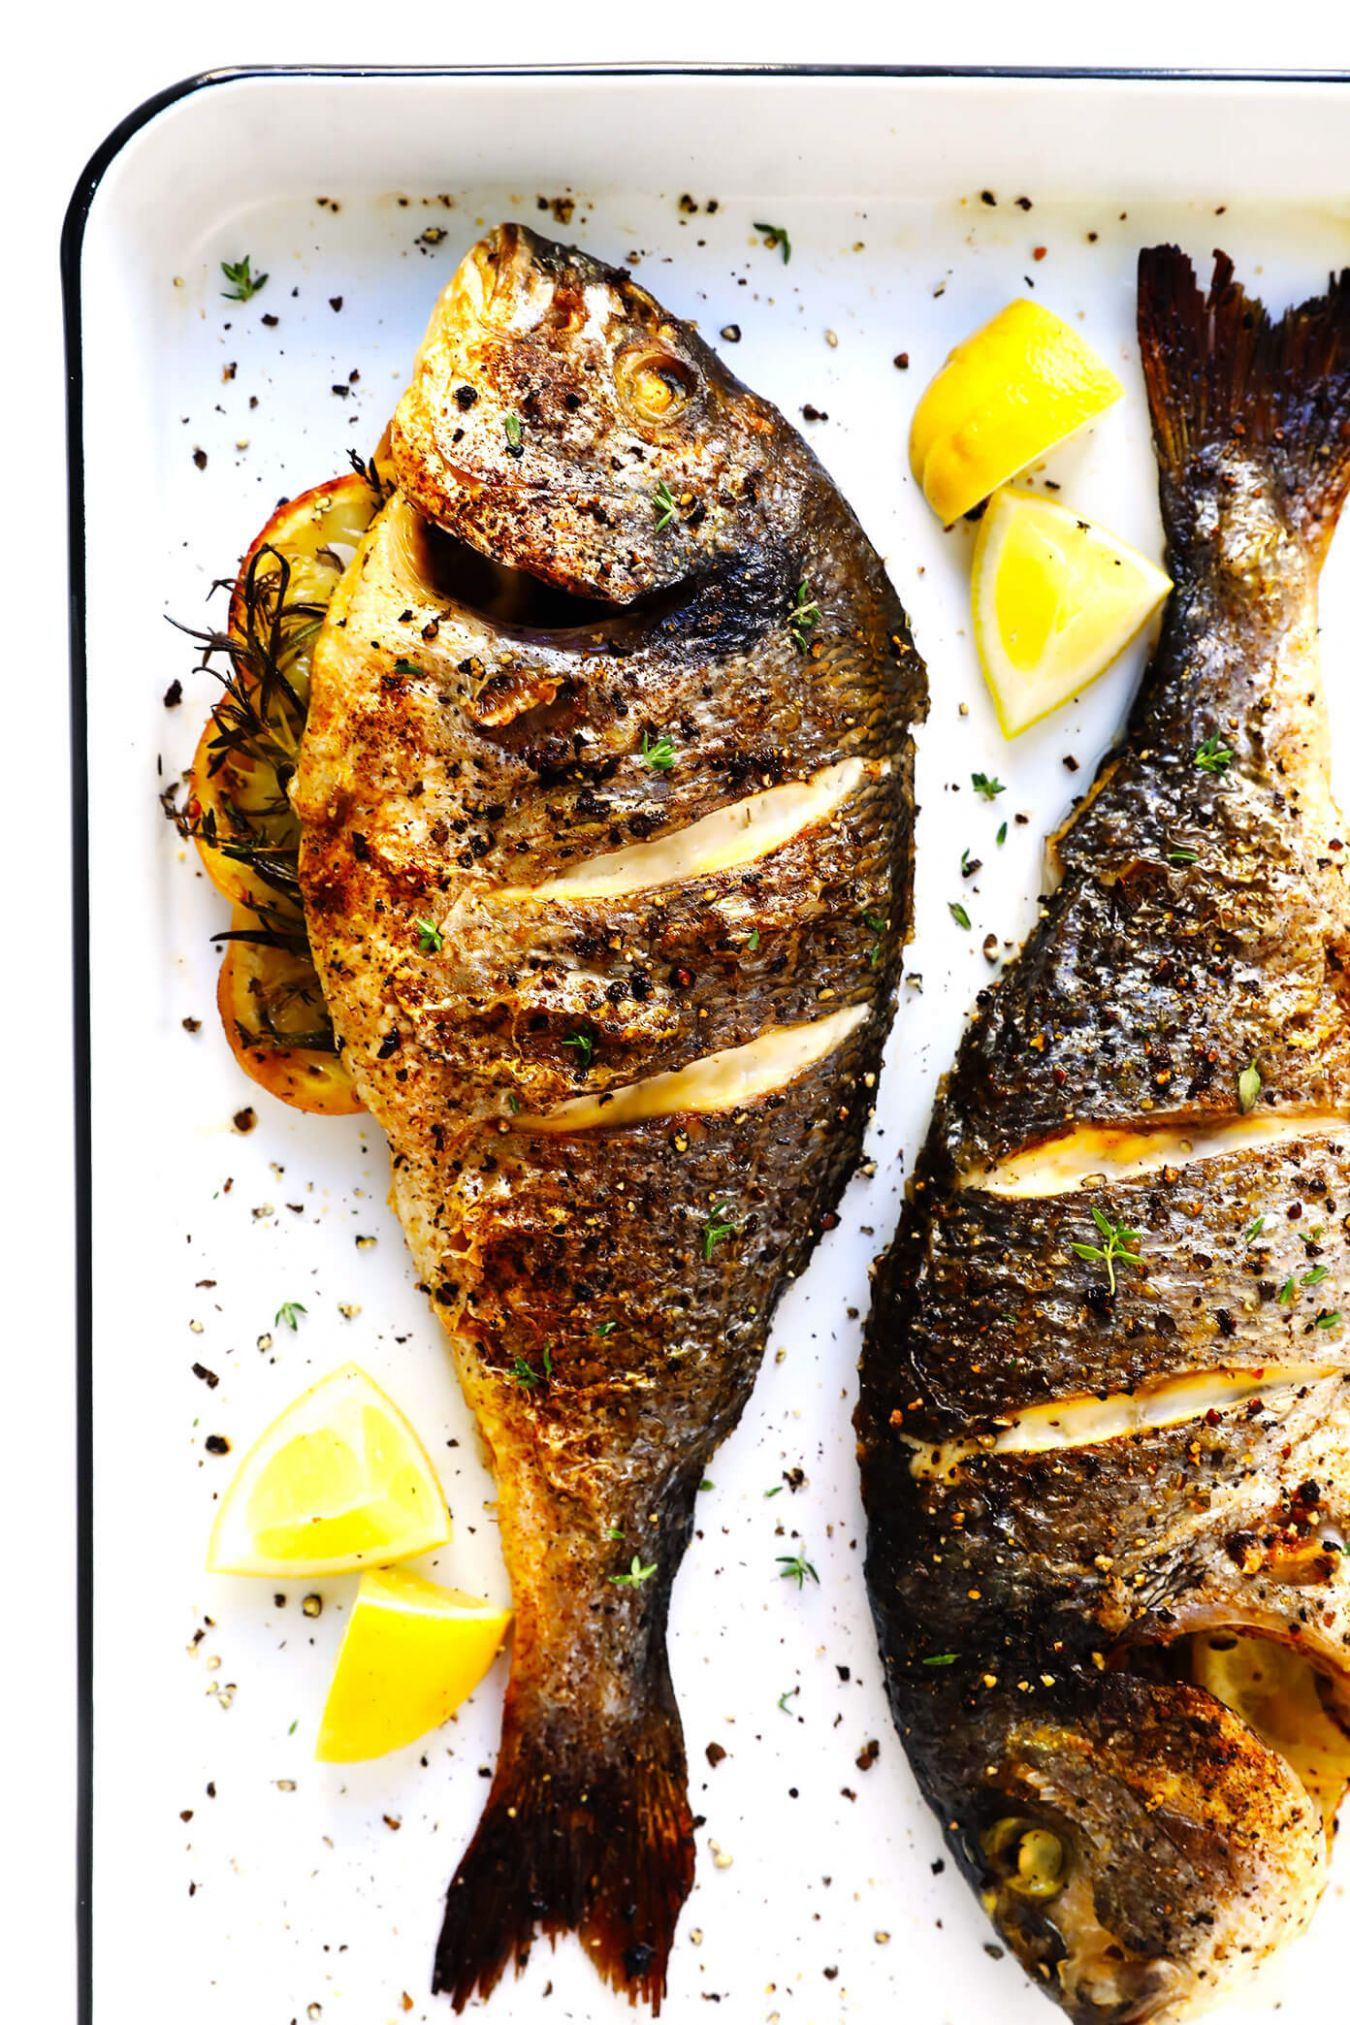 How To Cook A Whole Fish - Recipes Fish Baked